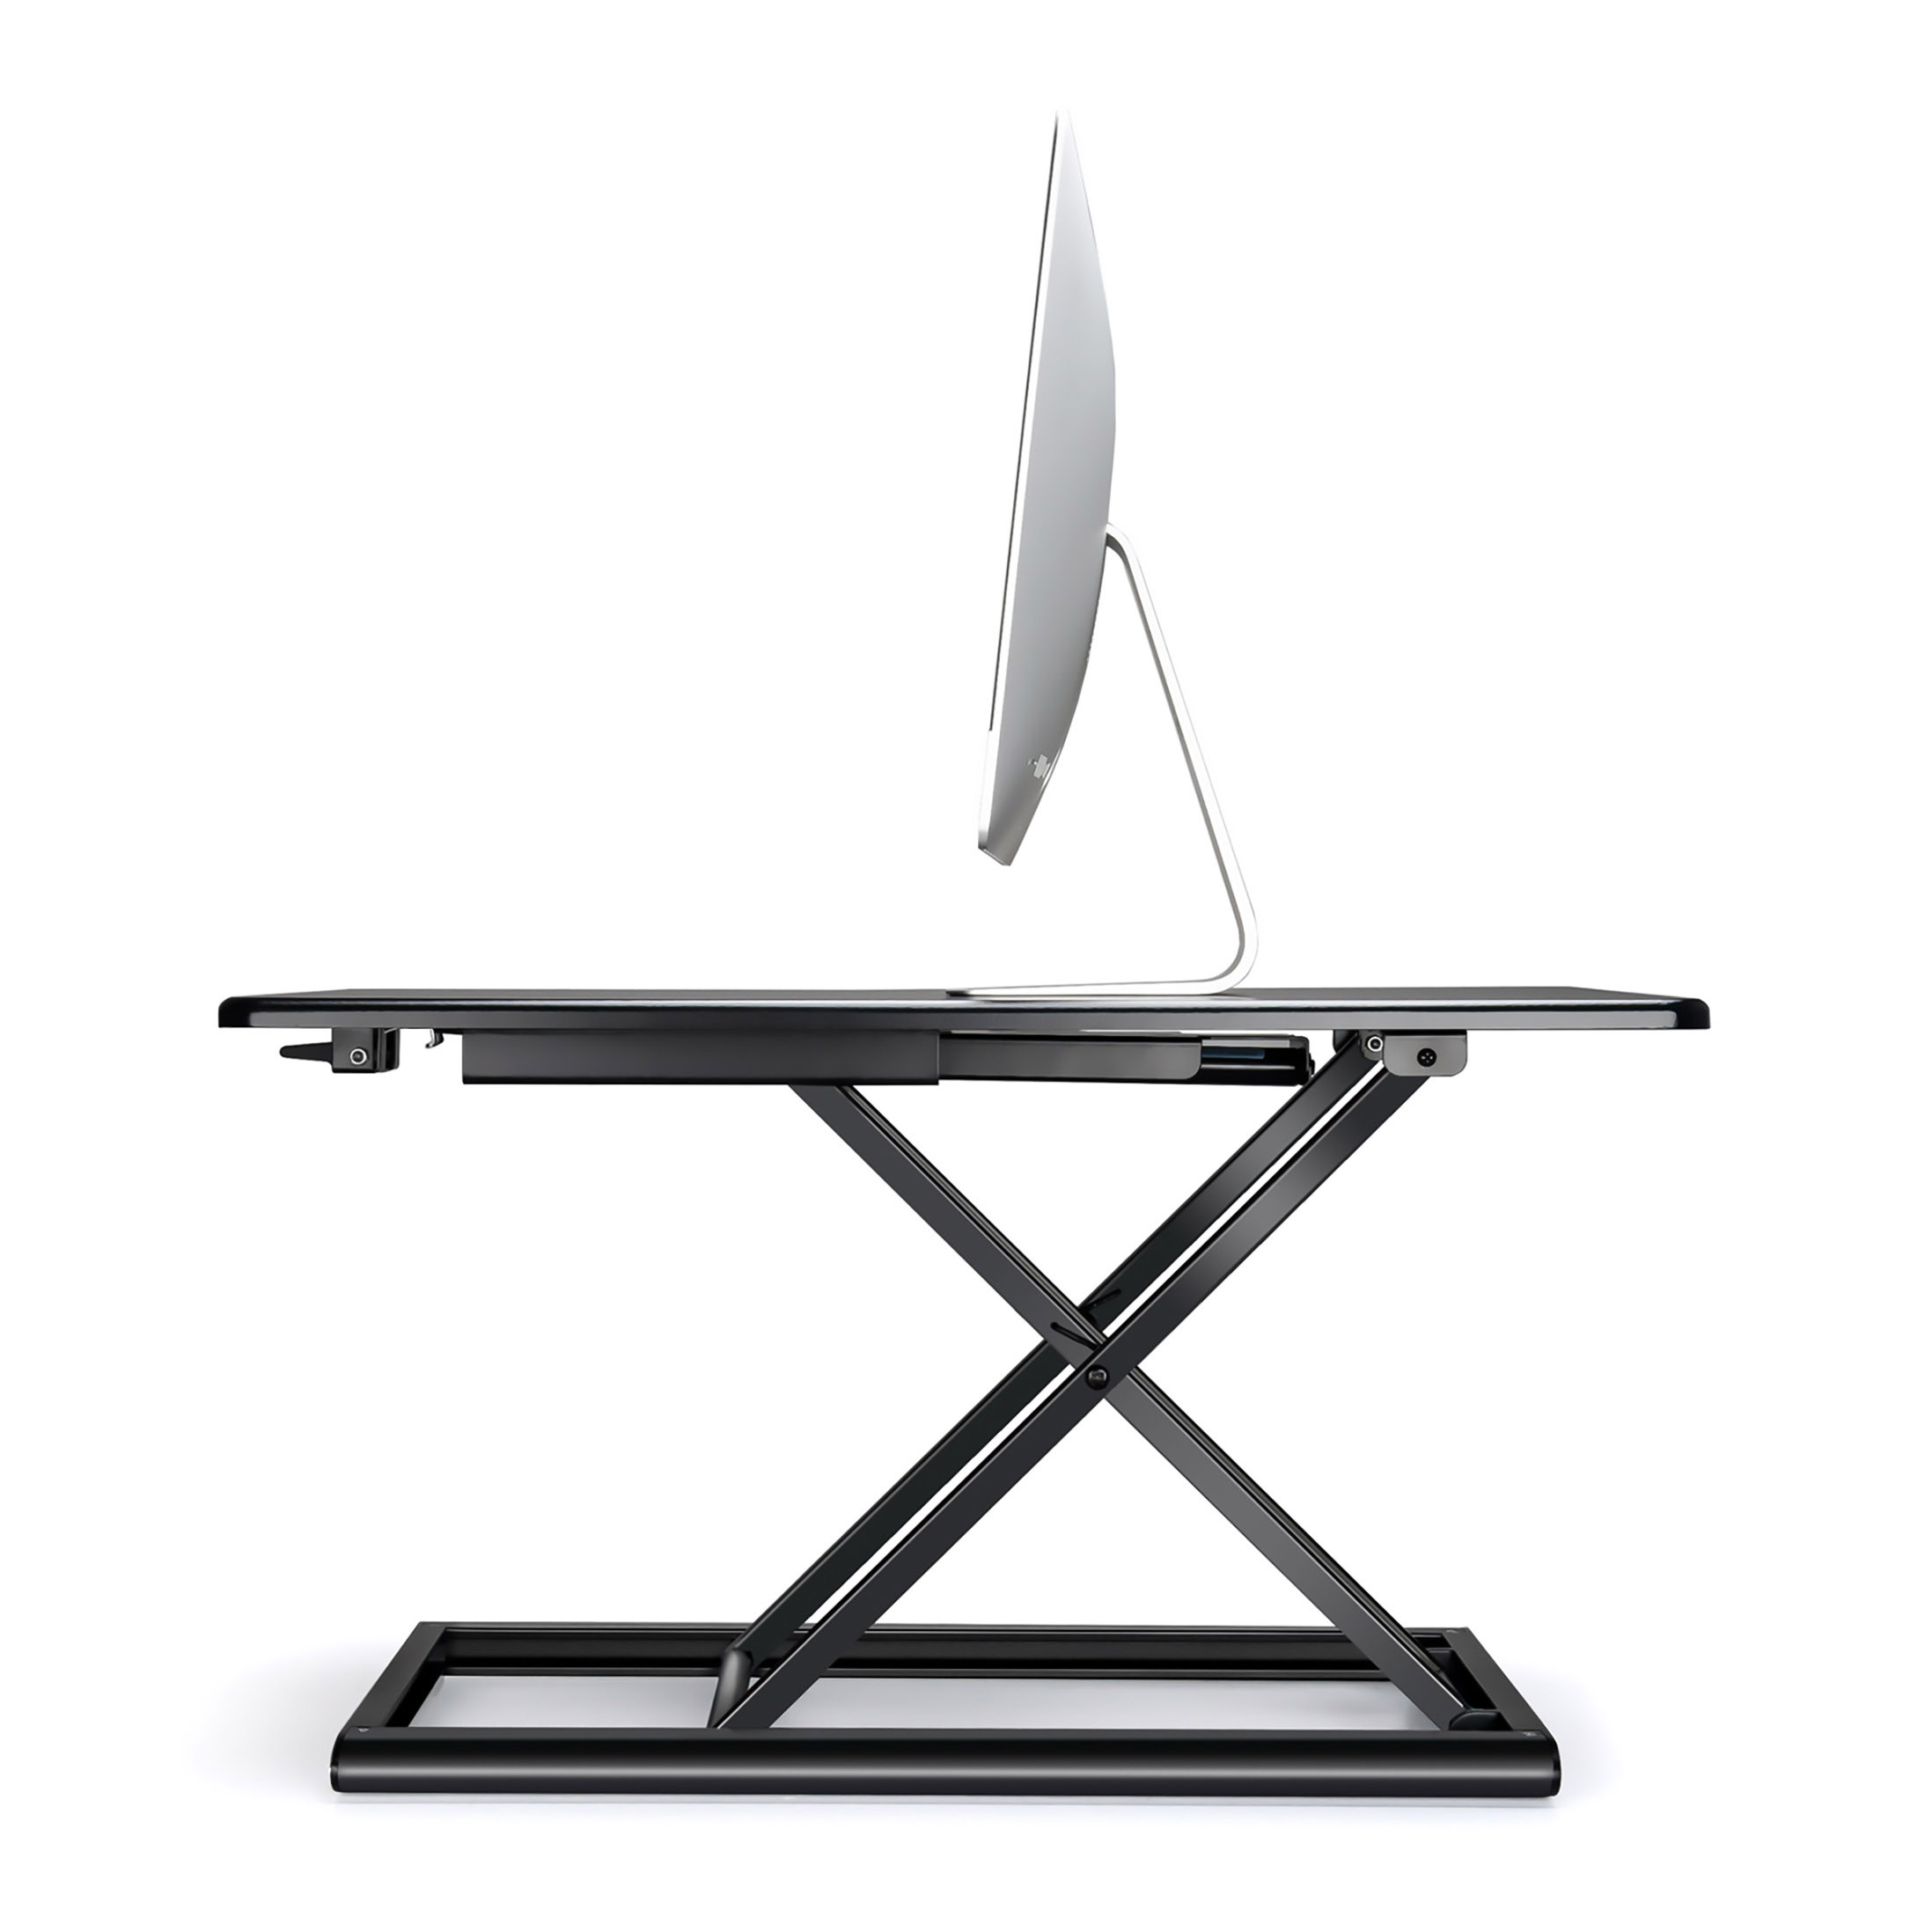 x-flextop portable sit to stand desk side view